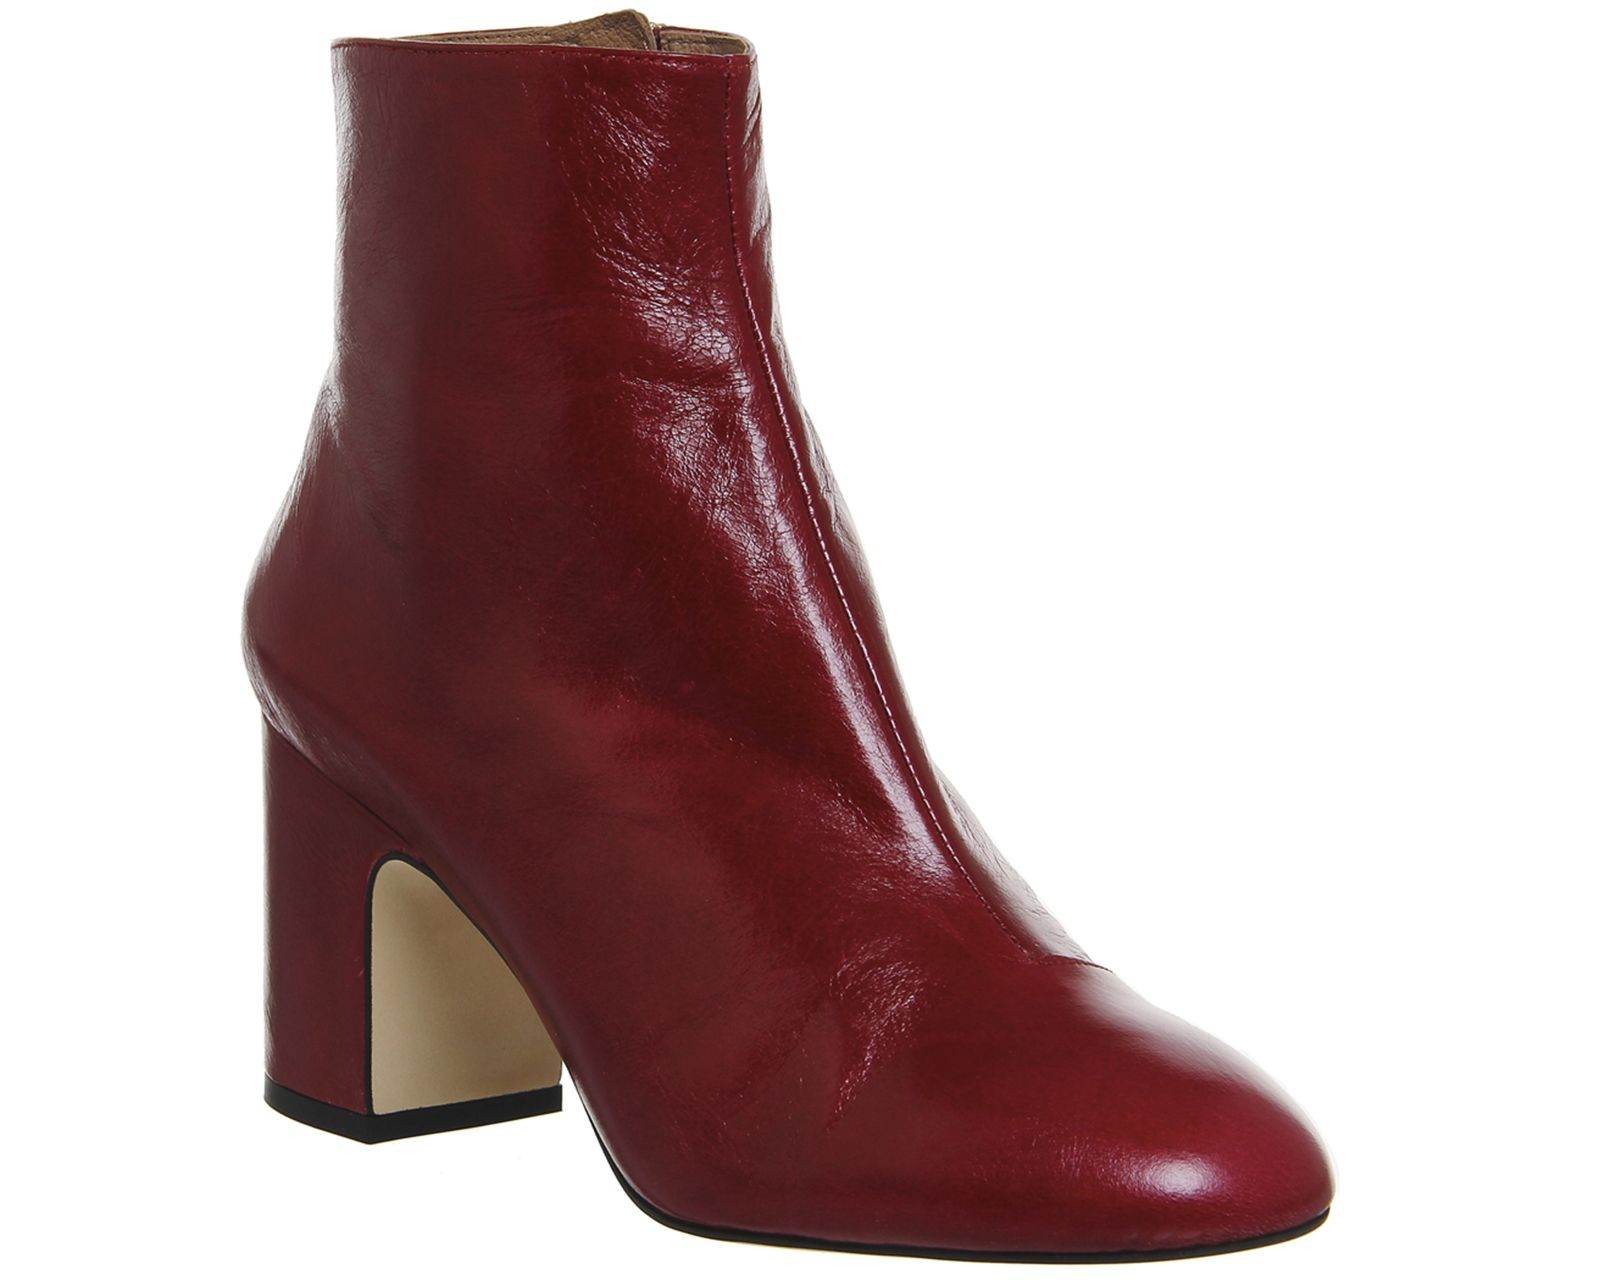 Office Laughter Block Heel Ankle Boots Red Leather | OFFICE ...